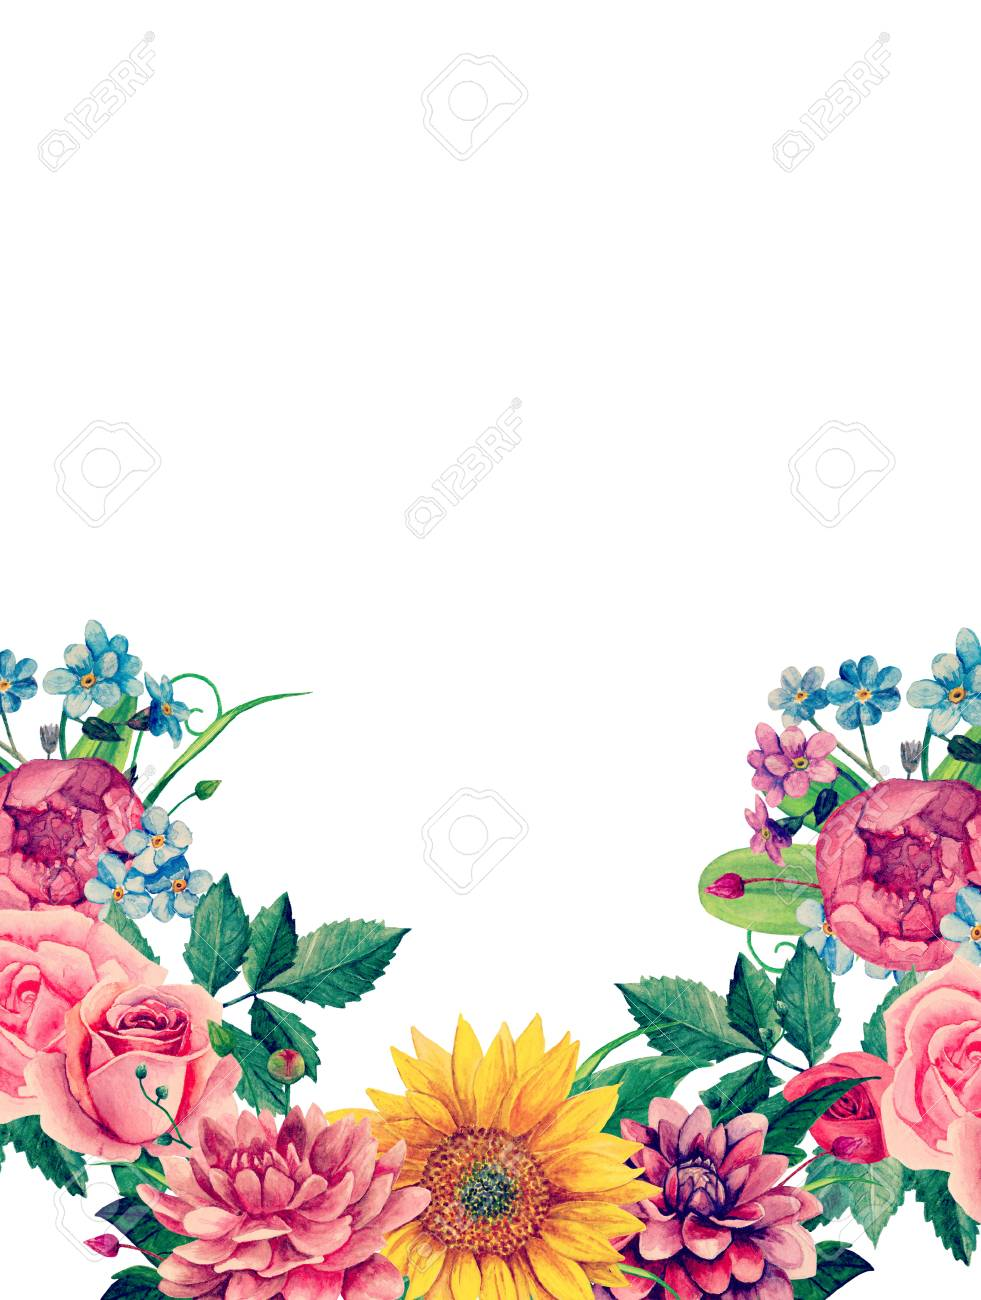 Watercolor Boho Flowers Pink Floral Bouquet Greeting Card Design Stock Photo Picture And Royalty Free Image Image 96454353